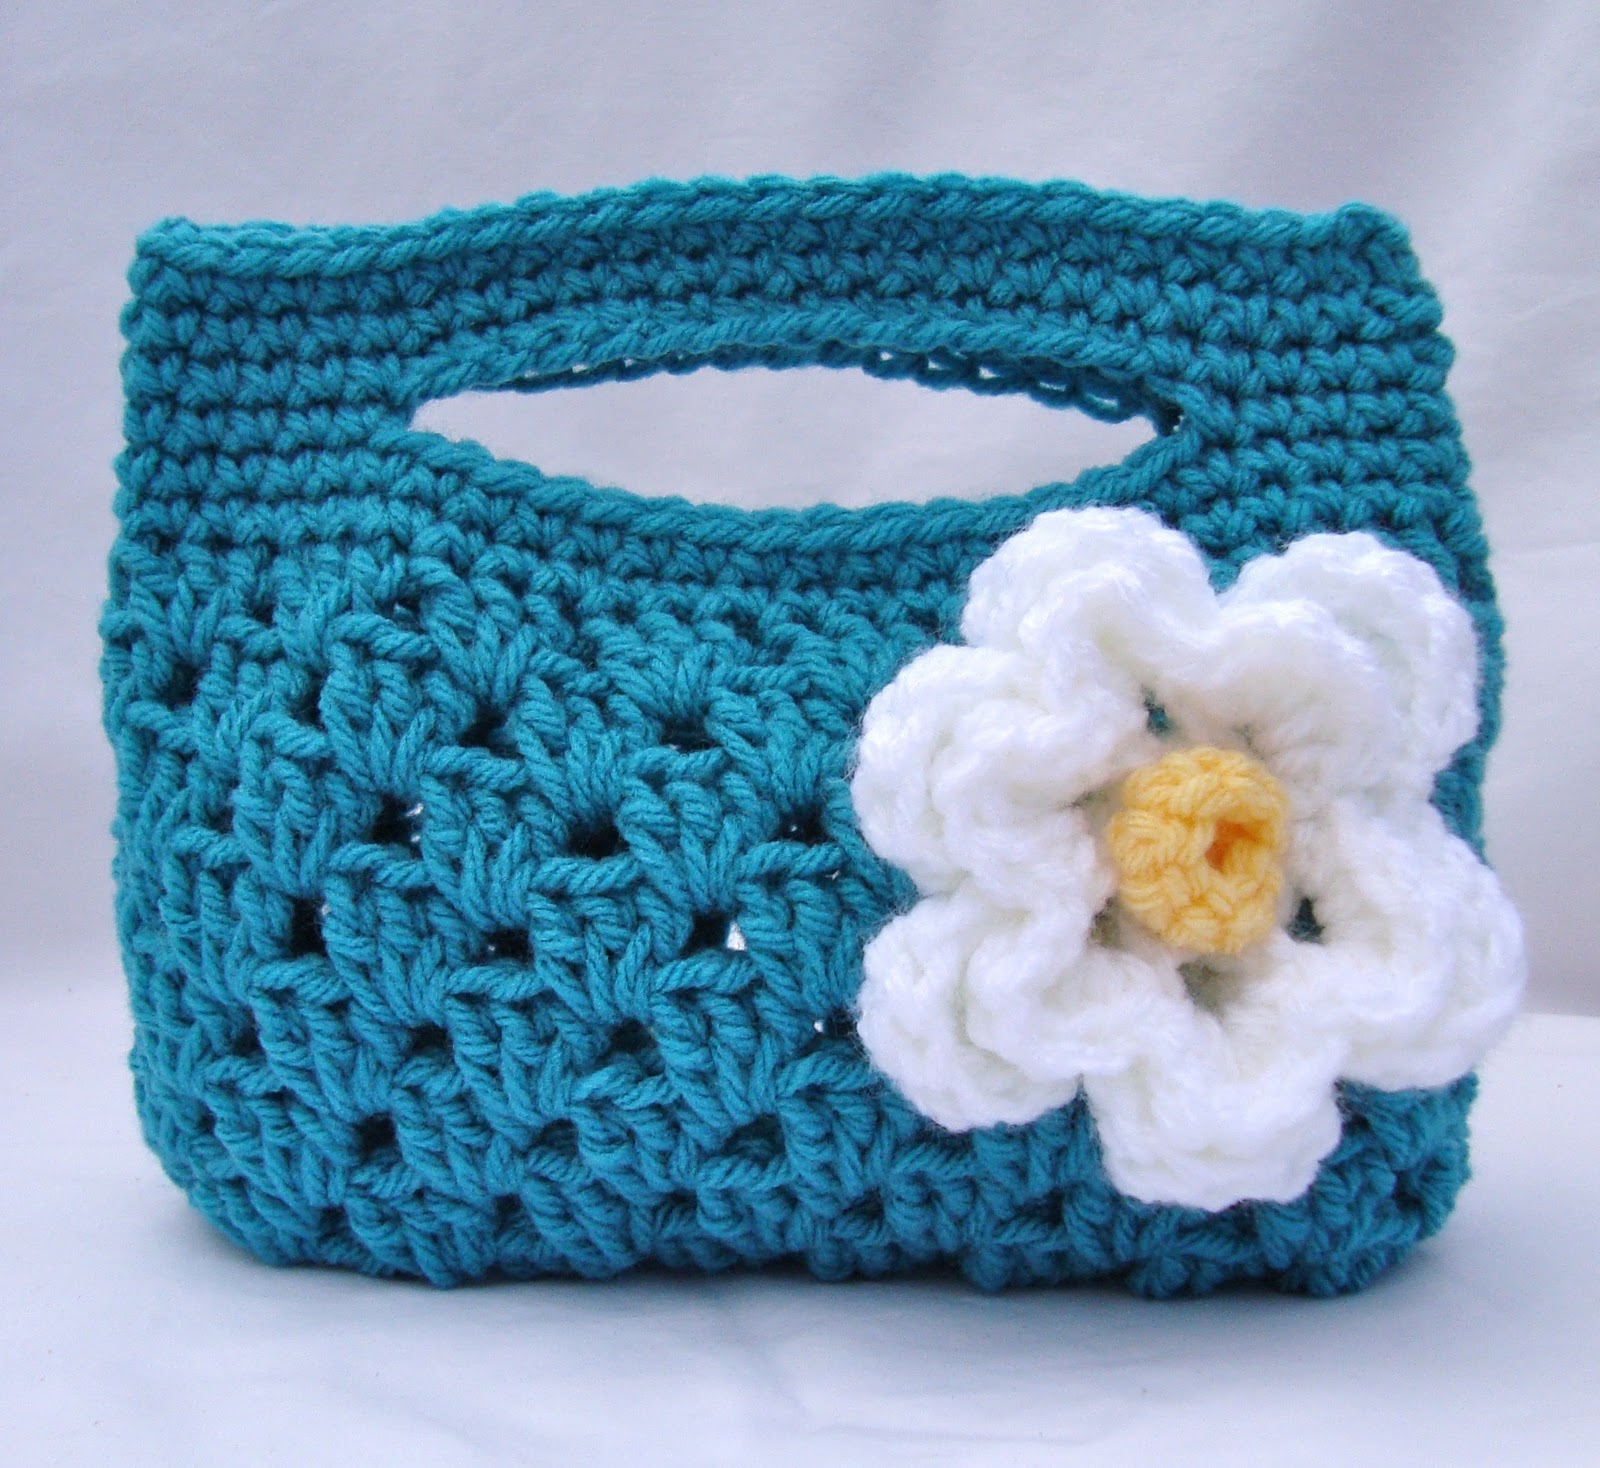 Free Crochet Patterns For Bags : tangled happy: Granny Stripe Boutique Bag